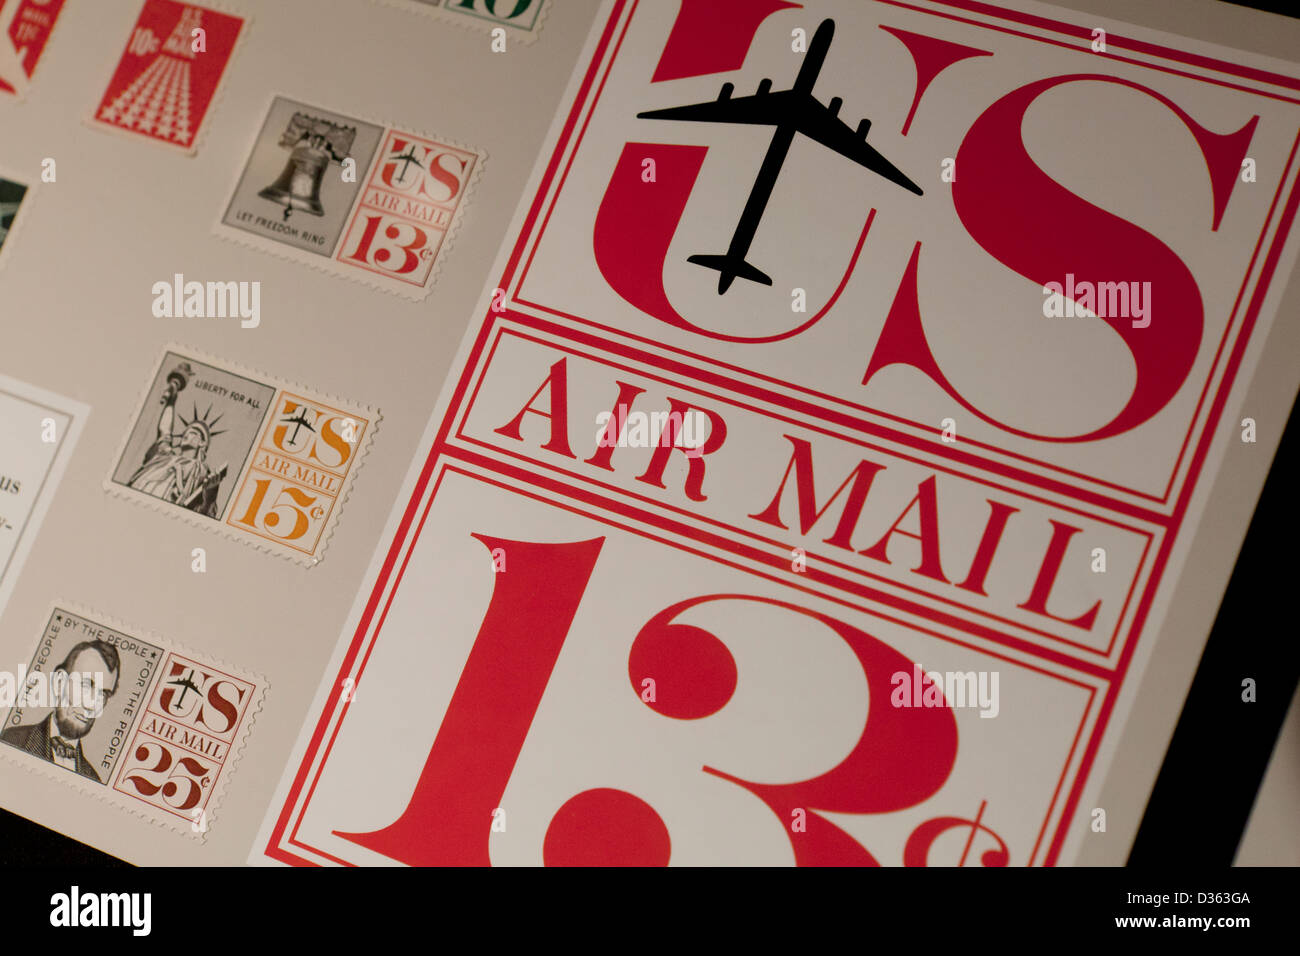 US Air Mail stamps - Stock Image